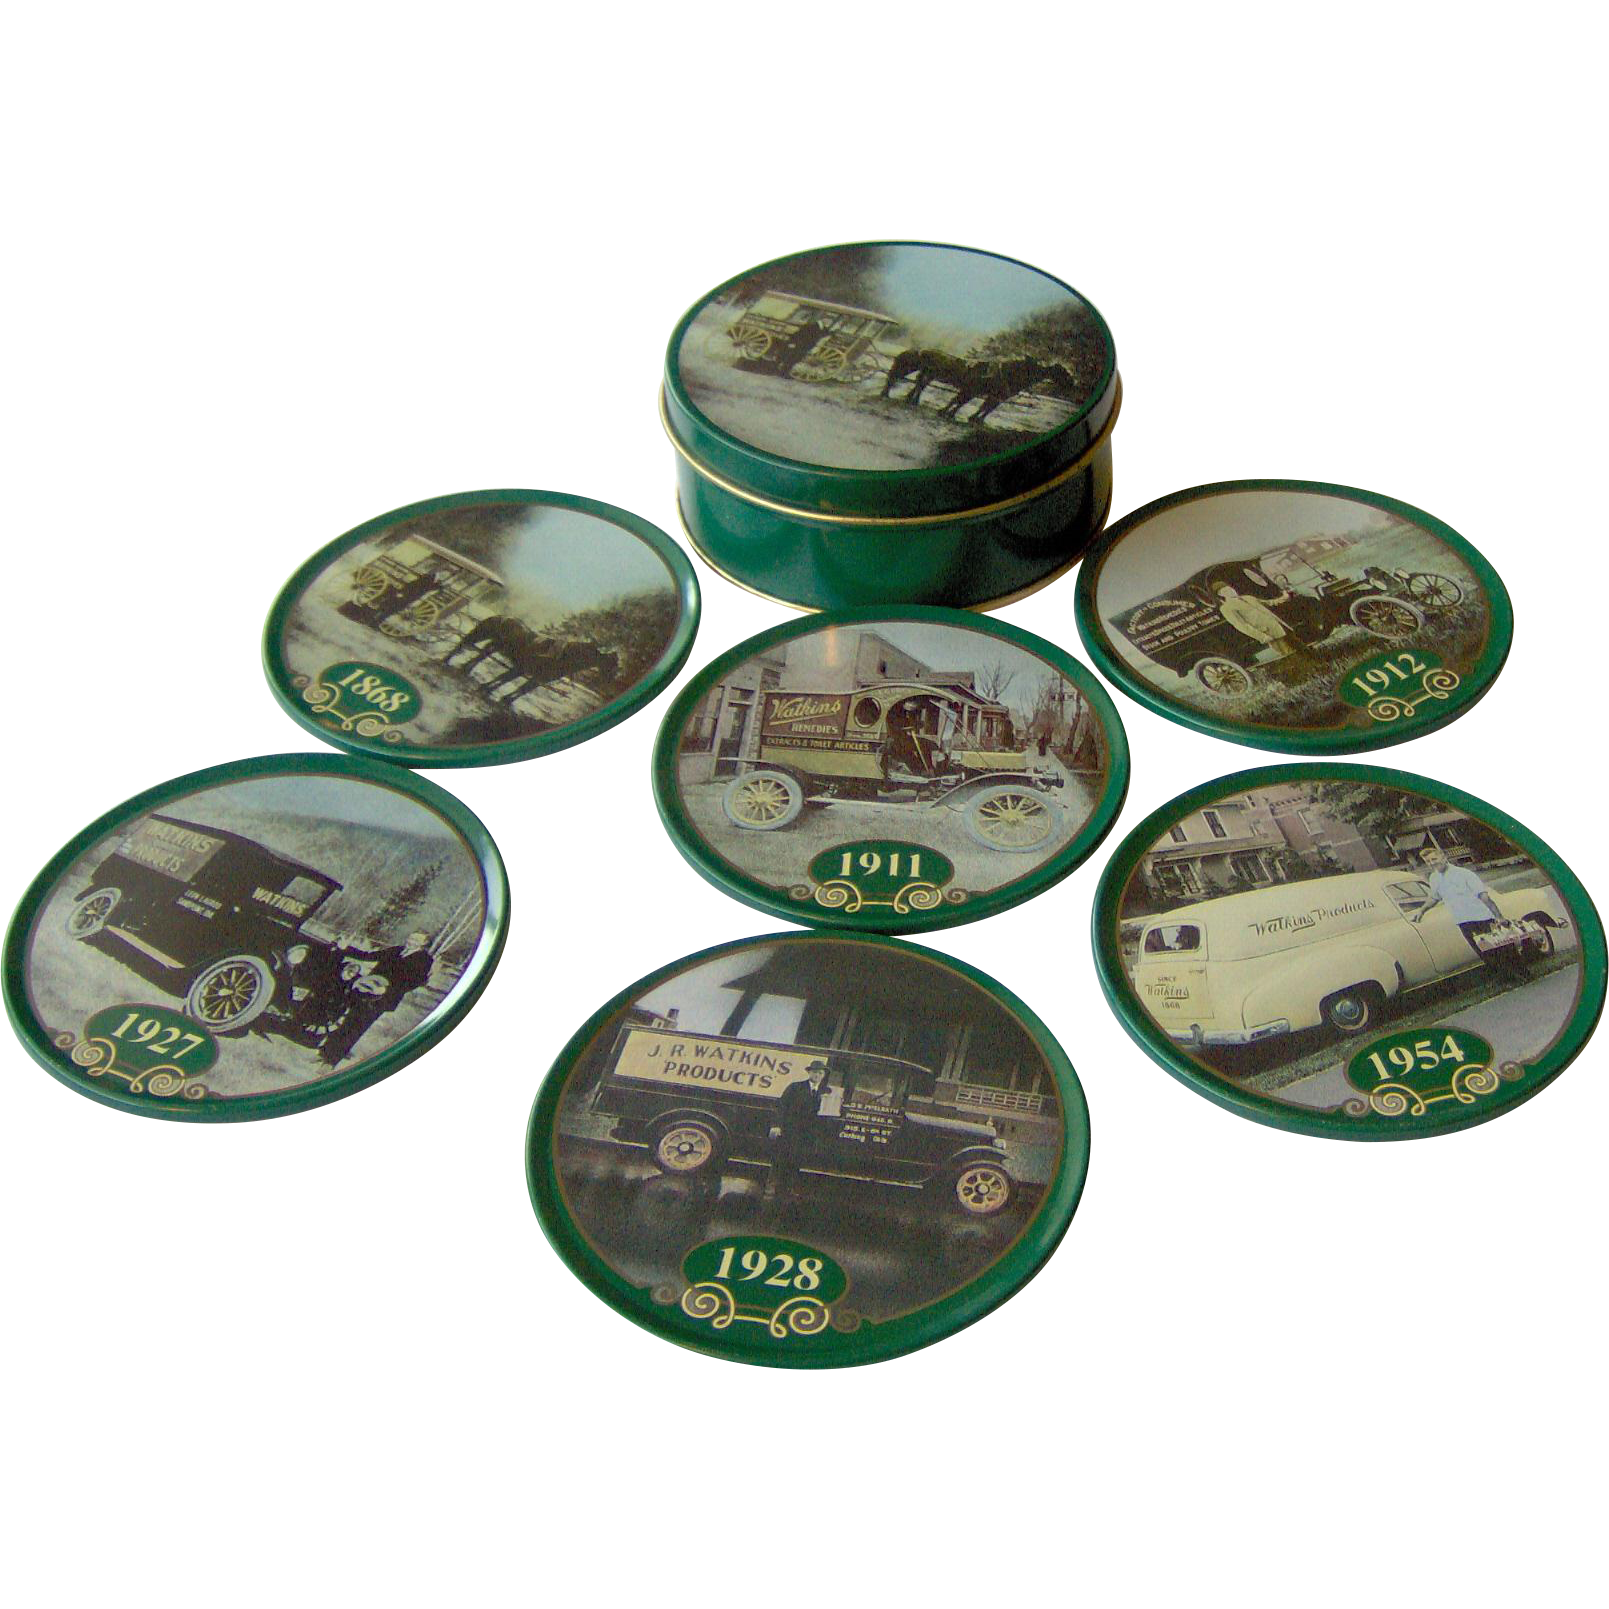 Vintage Watkins 125th Anniversary Coaster Set from 1993